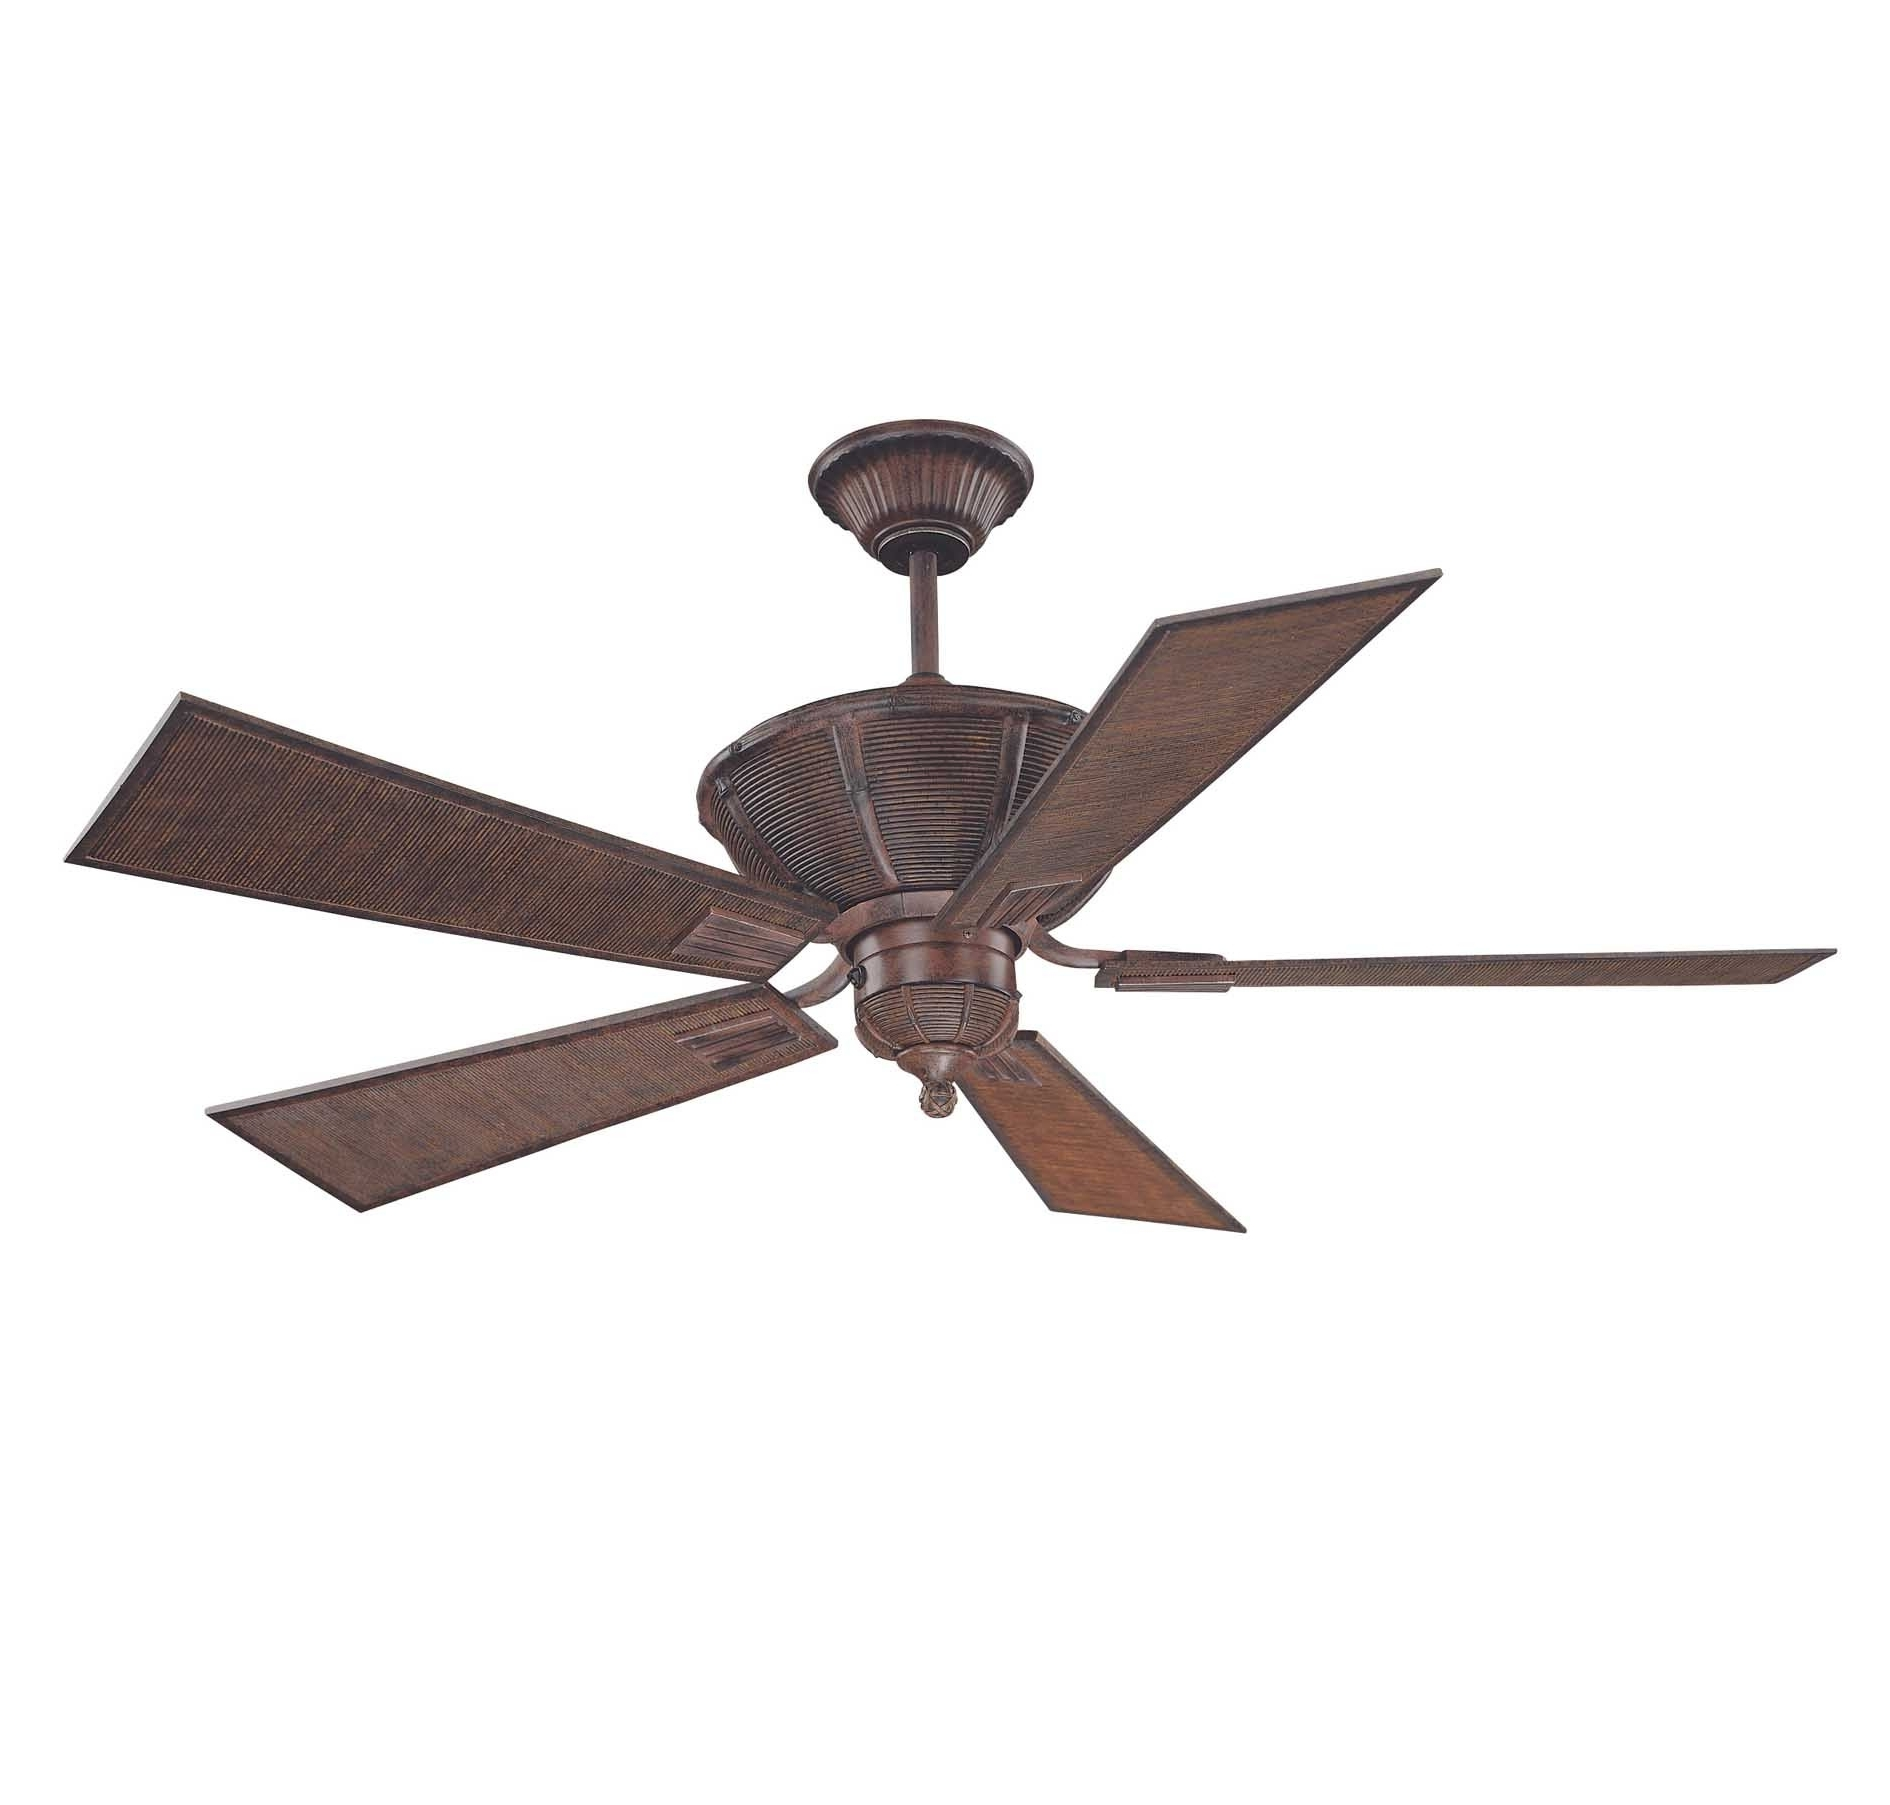 Recent Outdoor Ceiling Fans With Bamboo Blades With Regard To 52 110 5Ba 04 Danville 52 Inch 5 Blade Ceiling Fansavoy House (View 17 of 20)